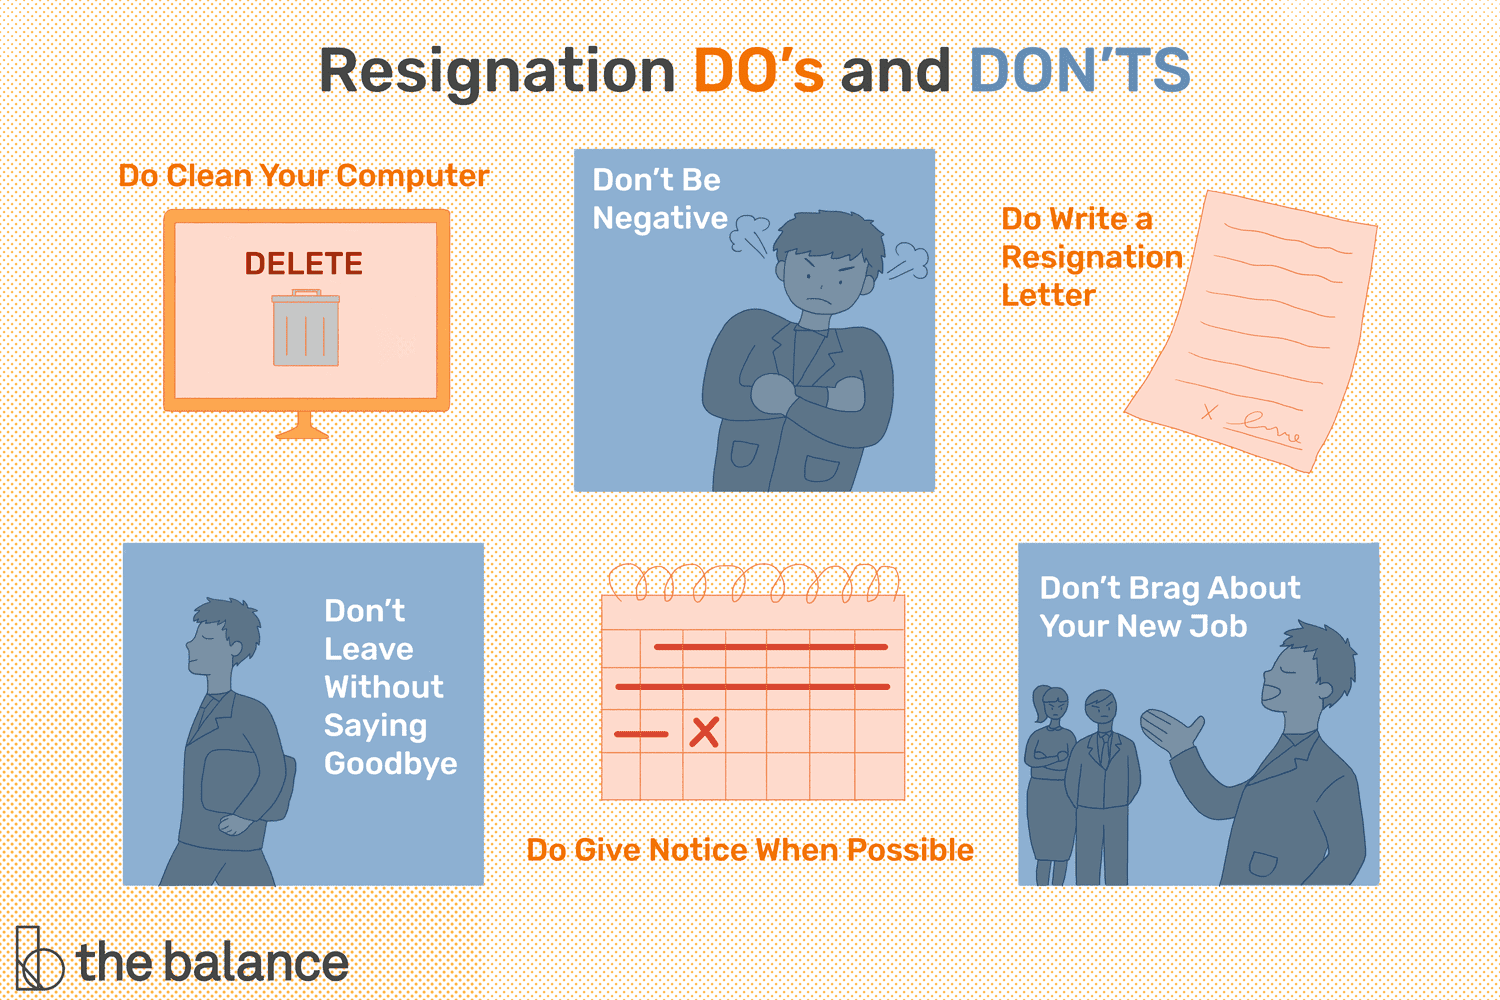 Resignation Do's and Don'ts